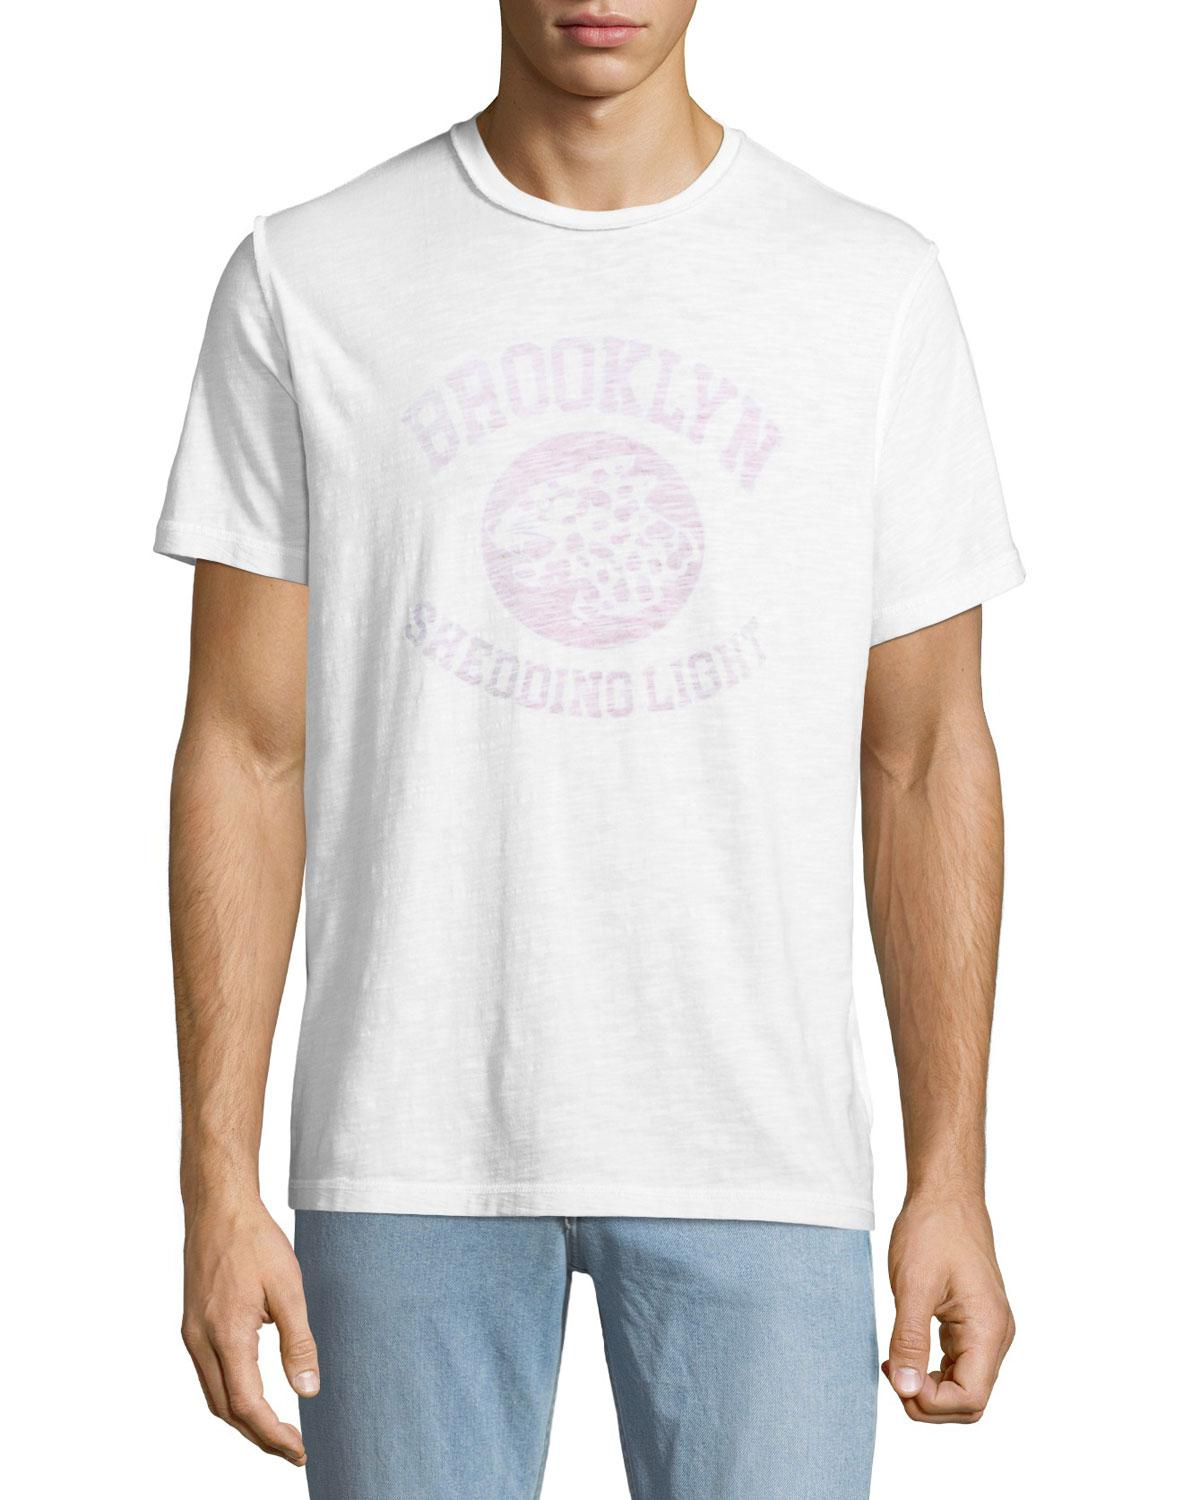 32914c4b13a1 Lyst - Ovadia And Sons Men's Shedding Light Graphic T-shirt in White ...